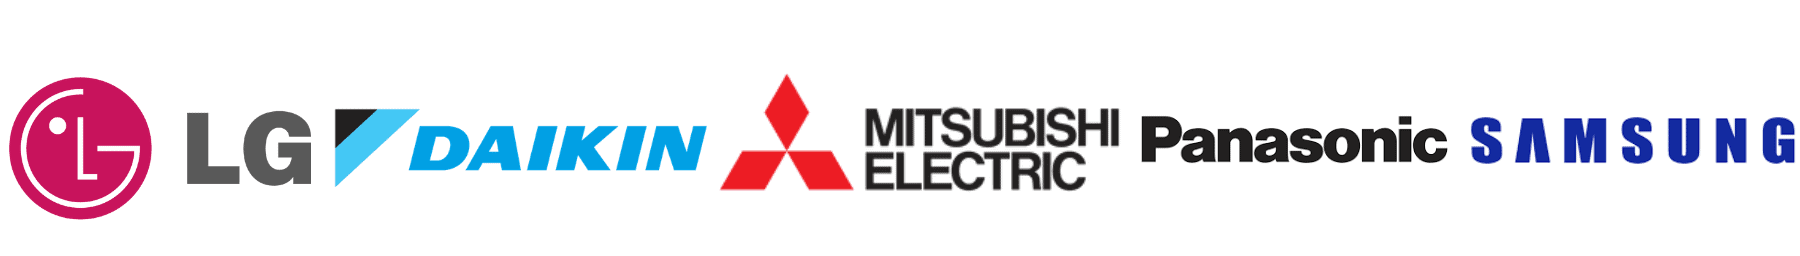 Some of the brands we install Mitsubishi Electric Panasonic Daikin LG Samsung